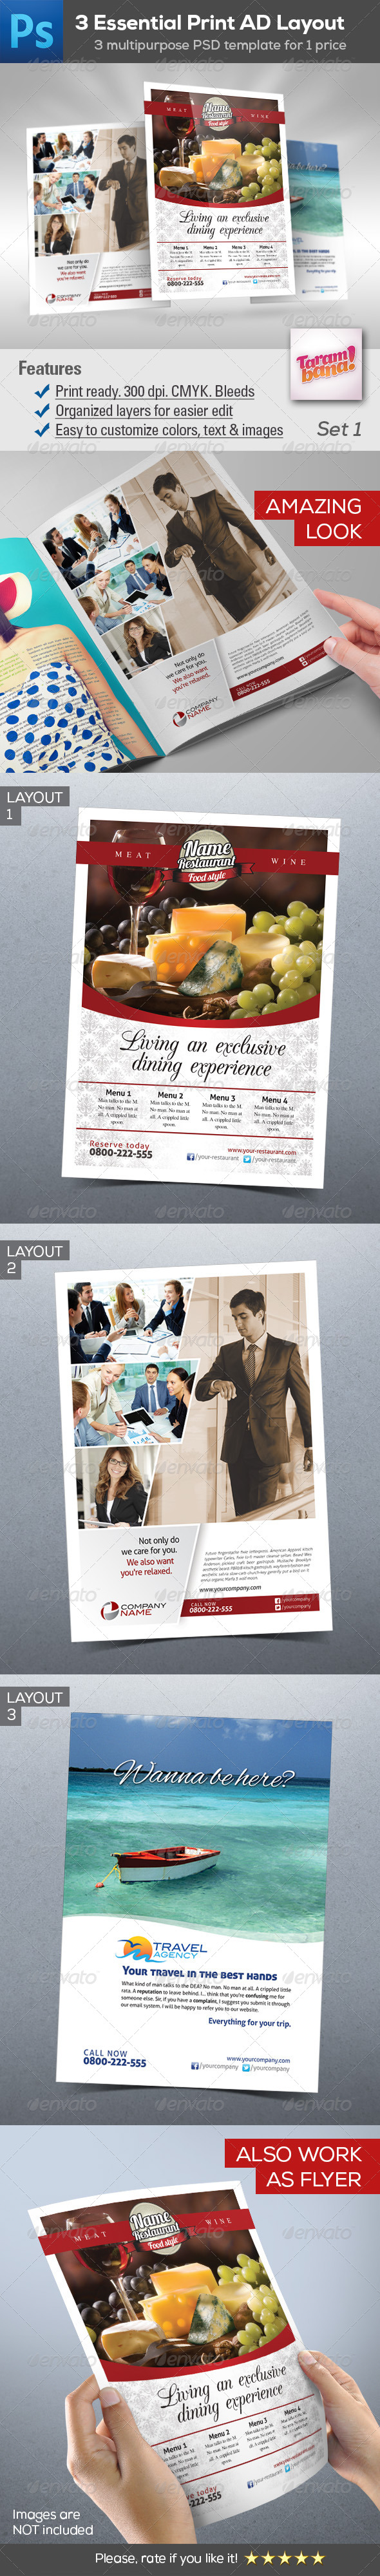 3 in 1 Essential Print Ad Layout